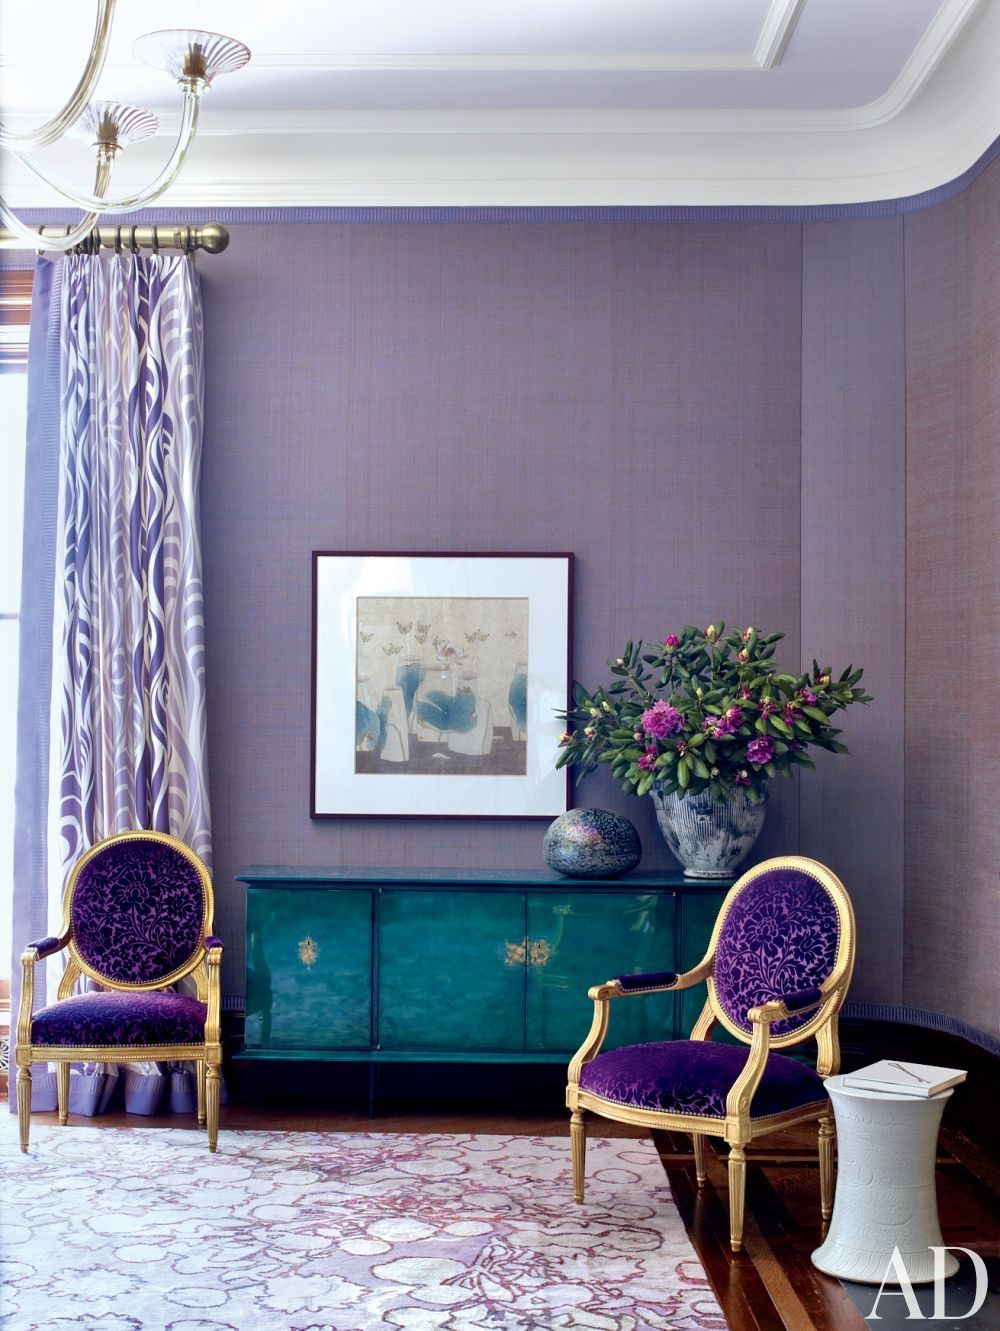 Pin By Lovedana On Purple With Passion Purple Living Room Home Interior Design House Interior #turquoise #and #purple #living #room #ideas